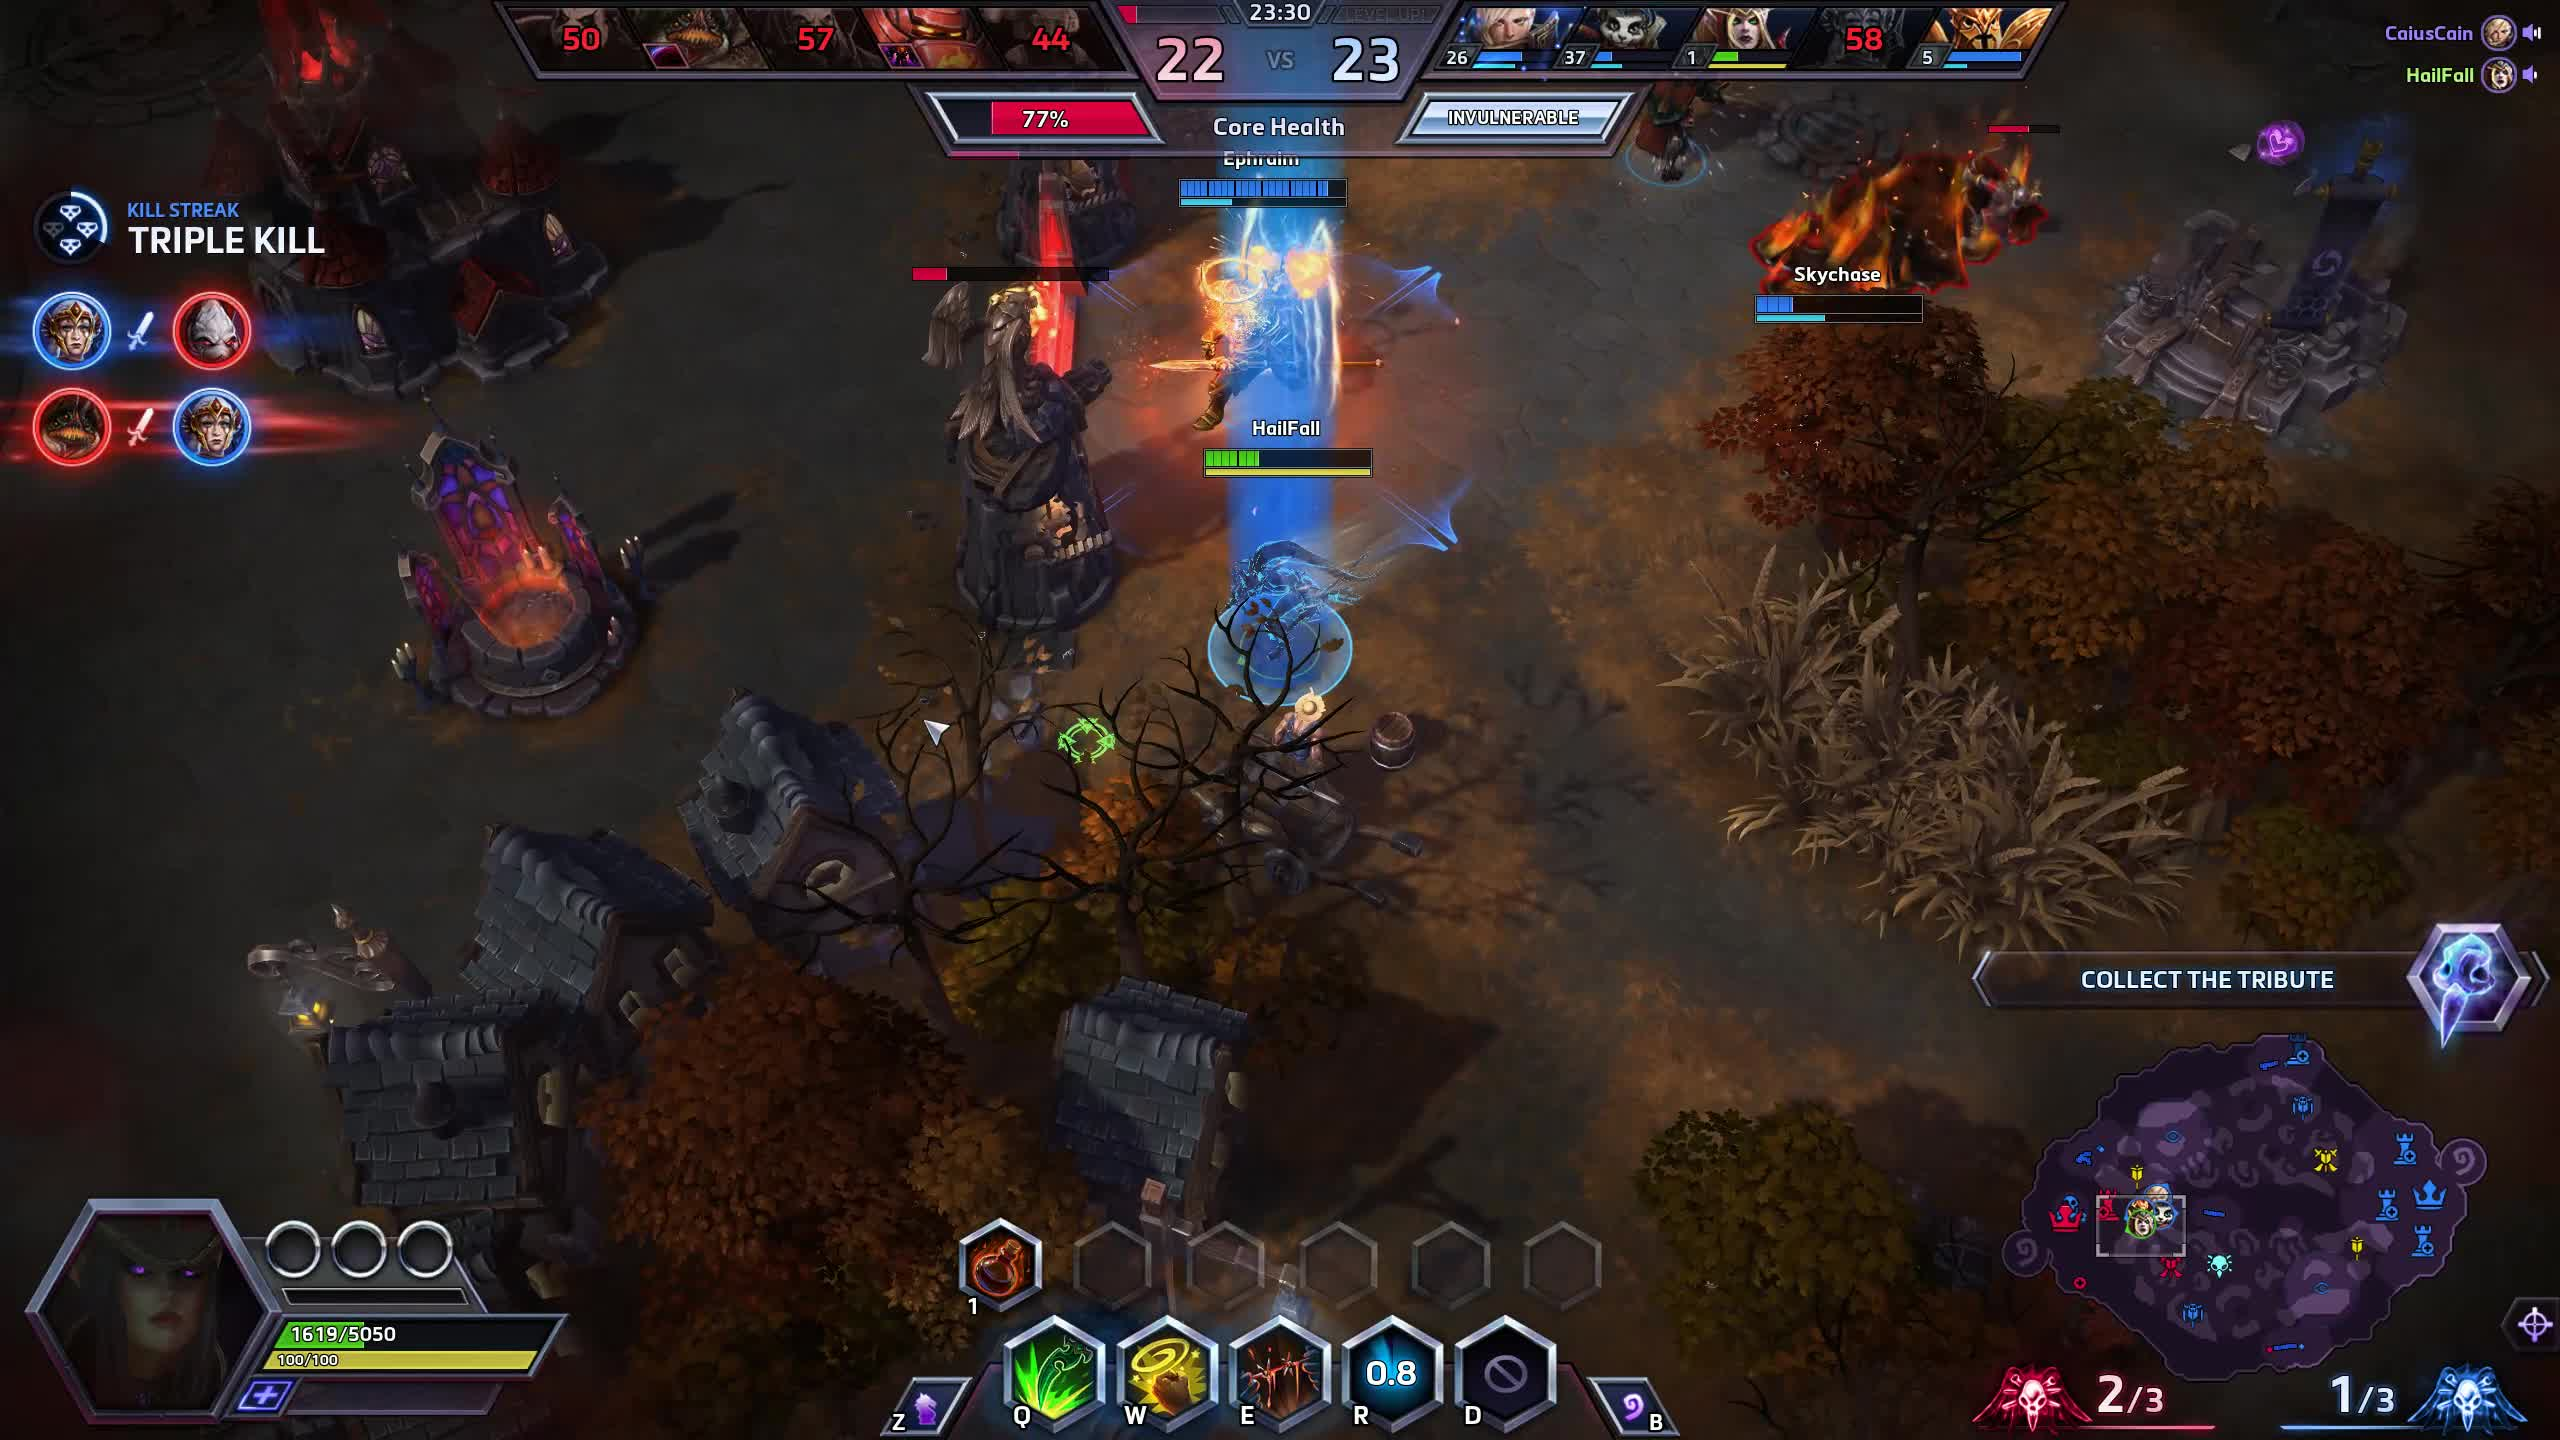 heroesofthestorm, Heroes of the Storm 2019.04.08 - 21.11.49.04.DVR GIFs